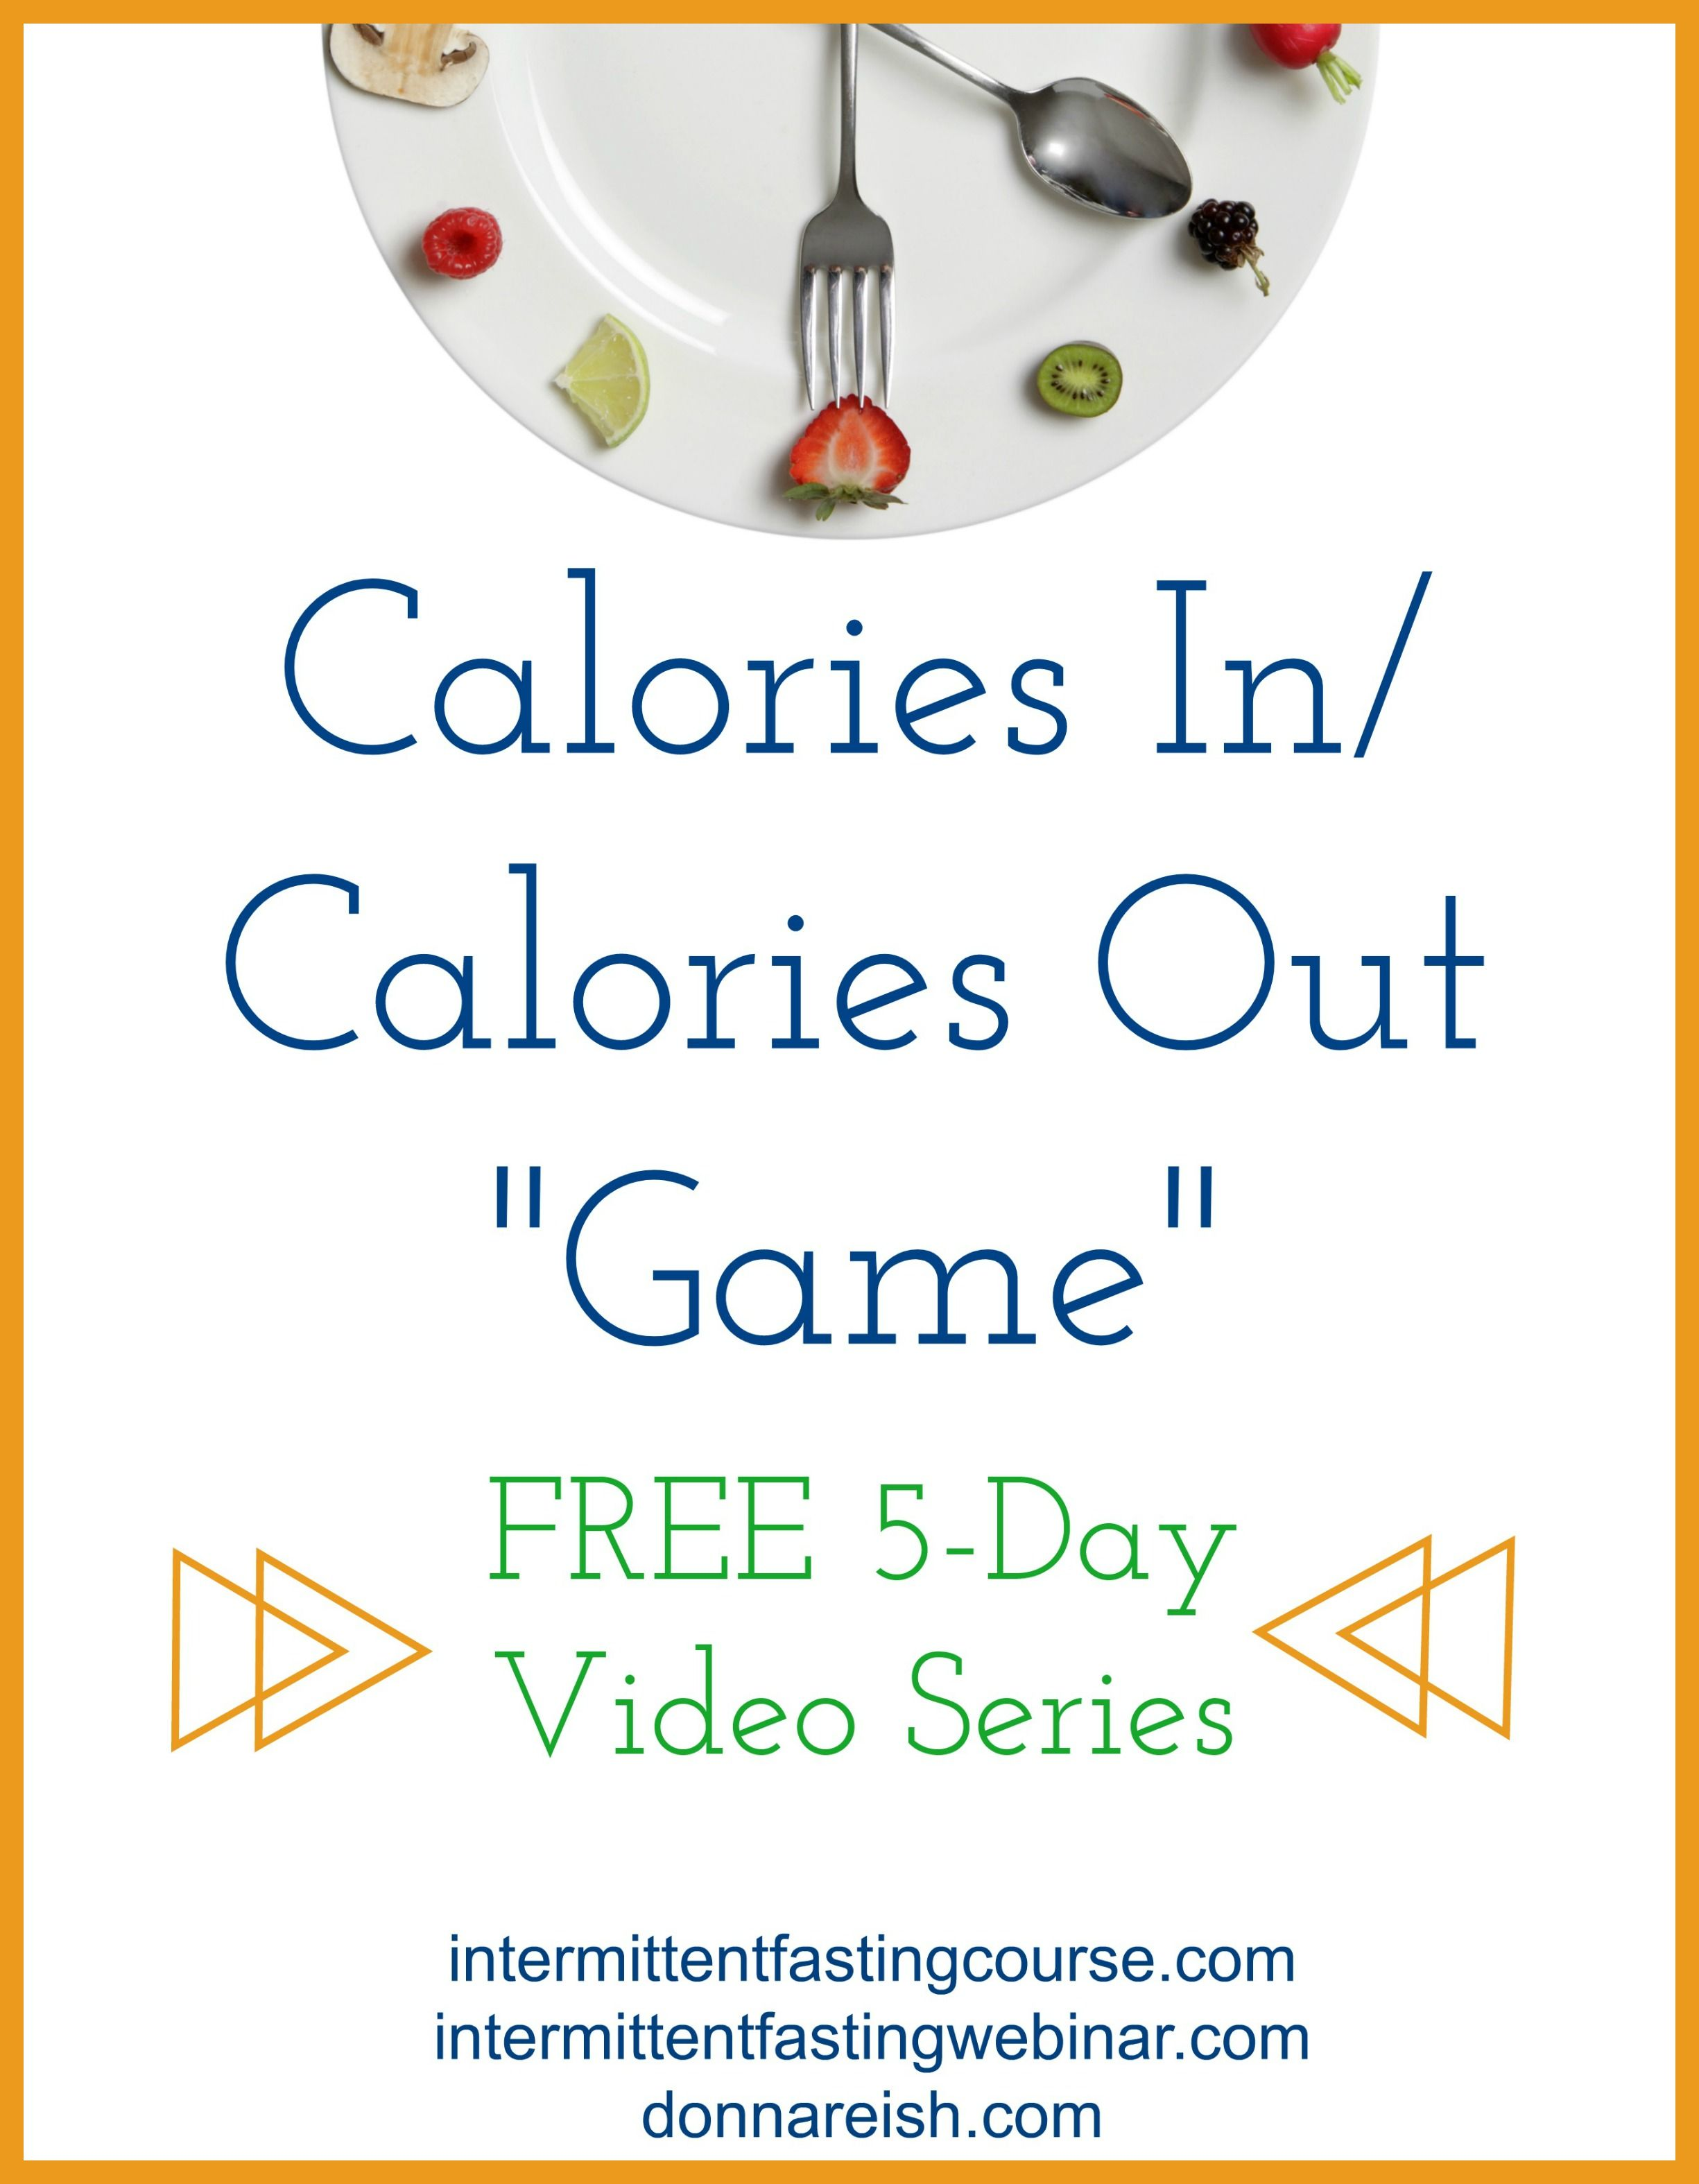 Sign Up Here Calories In Calories Out Game Free 5 Day